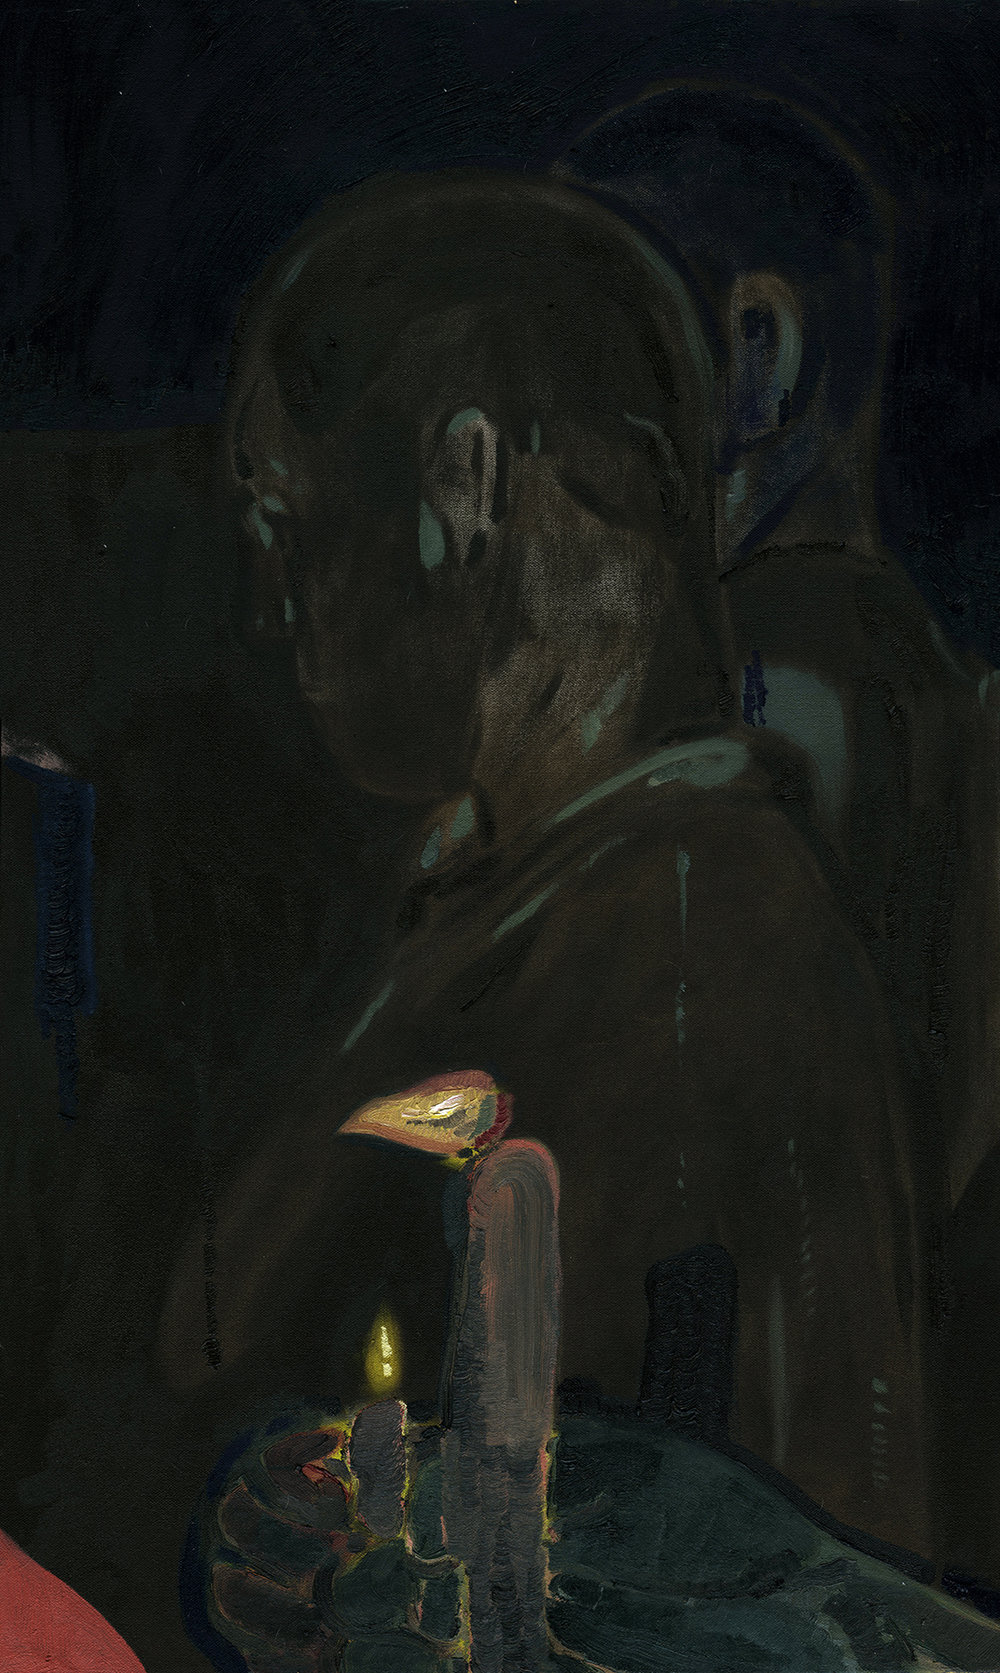 Anthony Cudahy, Vigil 2, 2017, oil on canvas, 30 x 18 in.